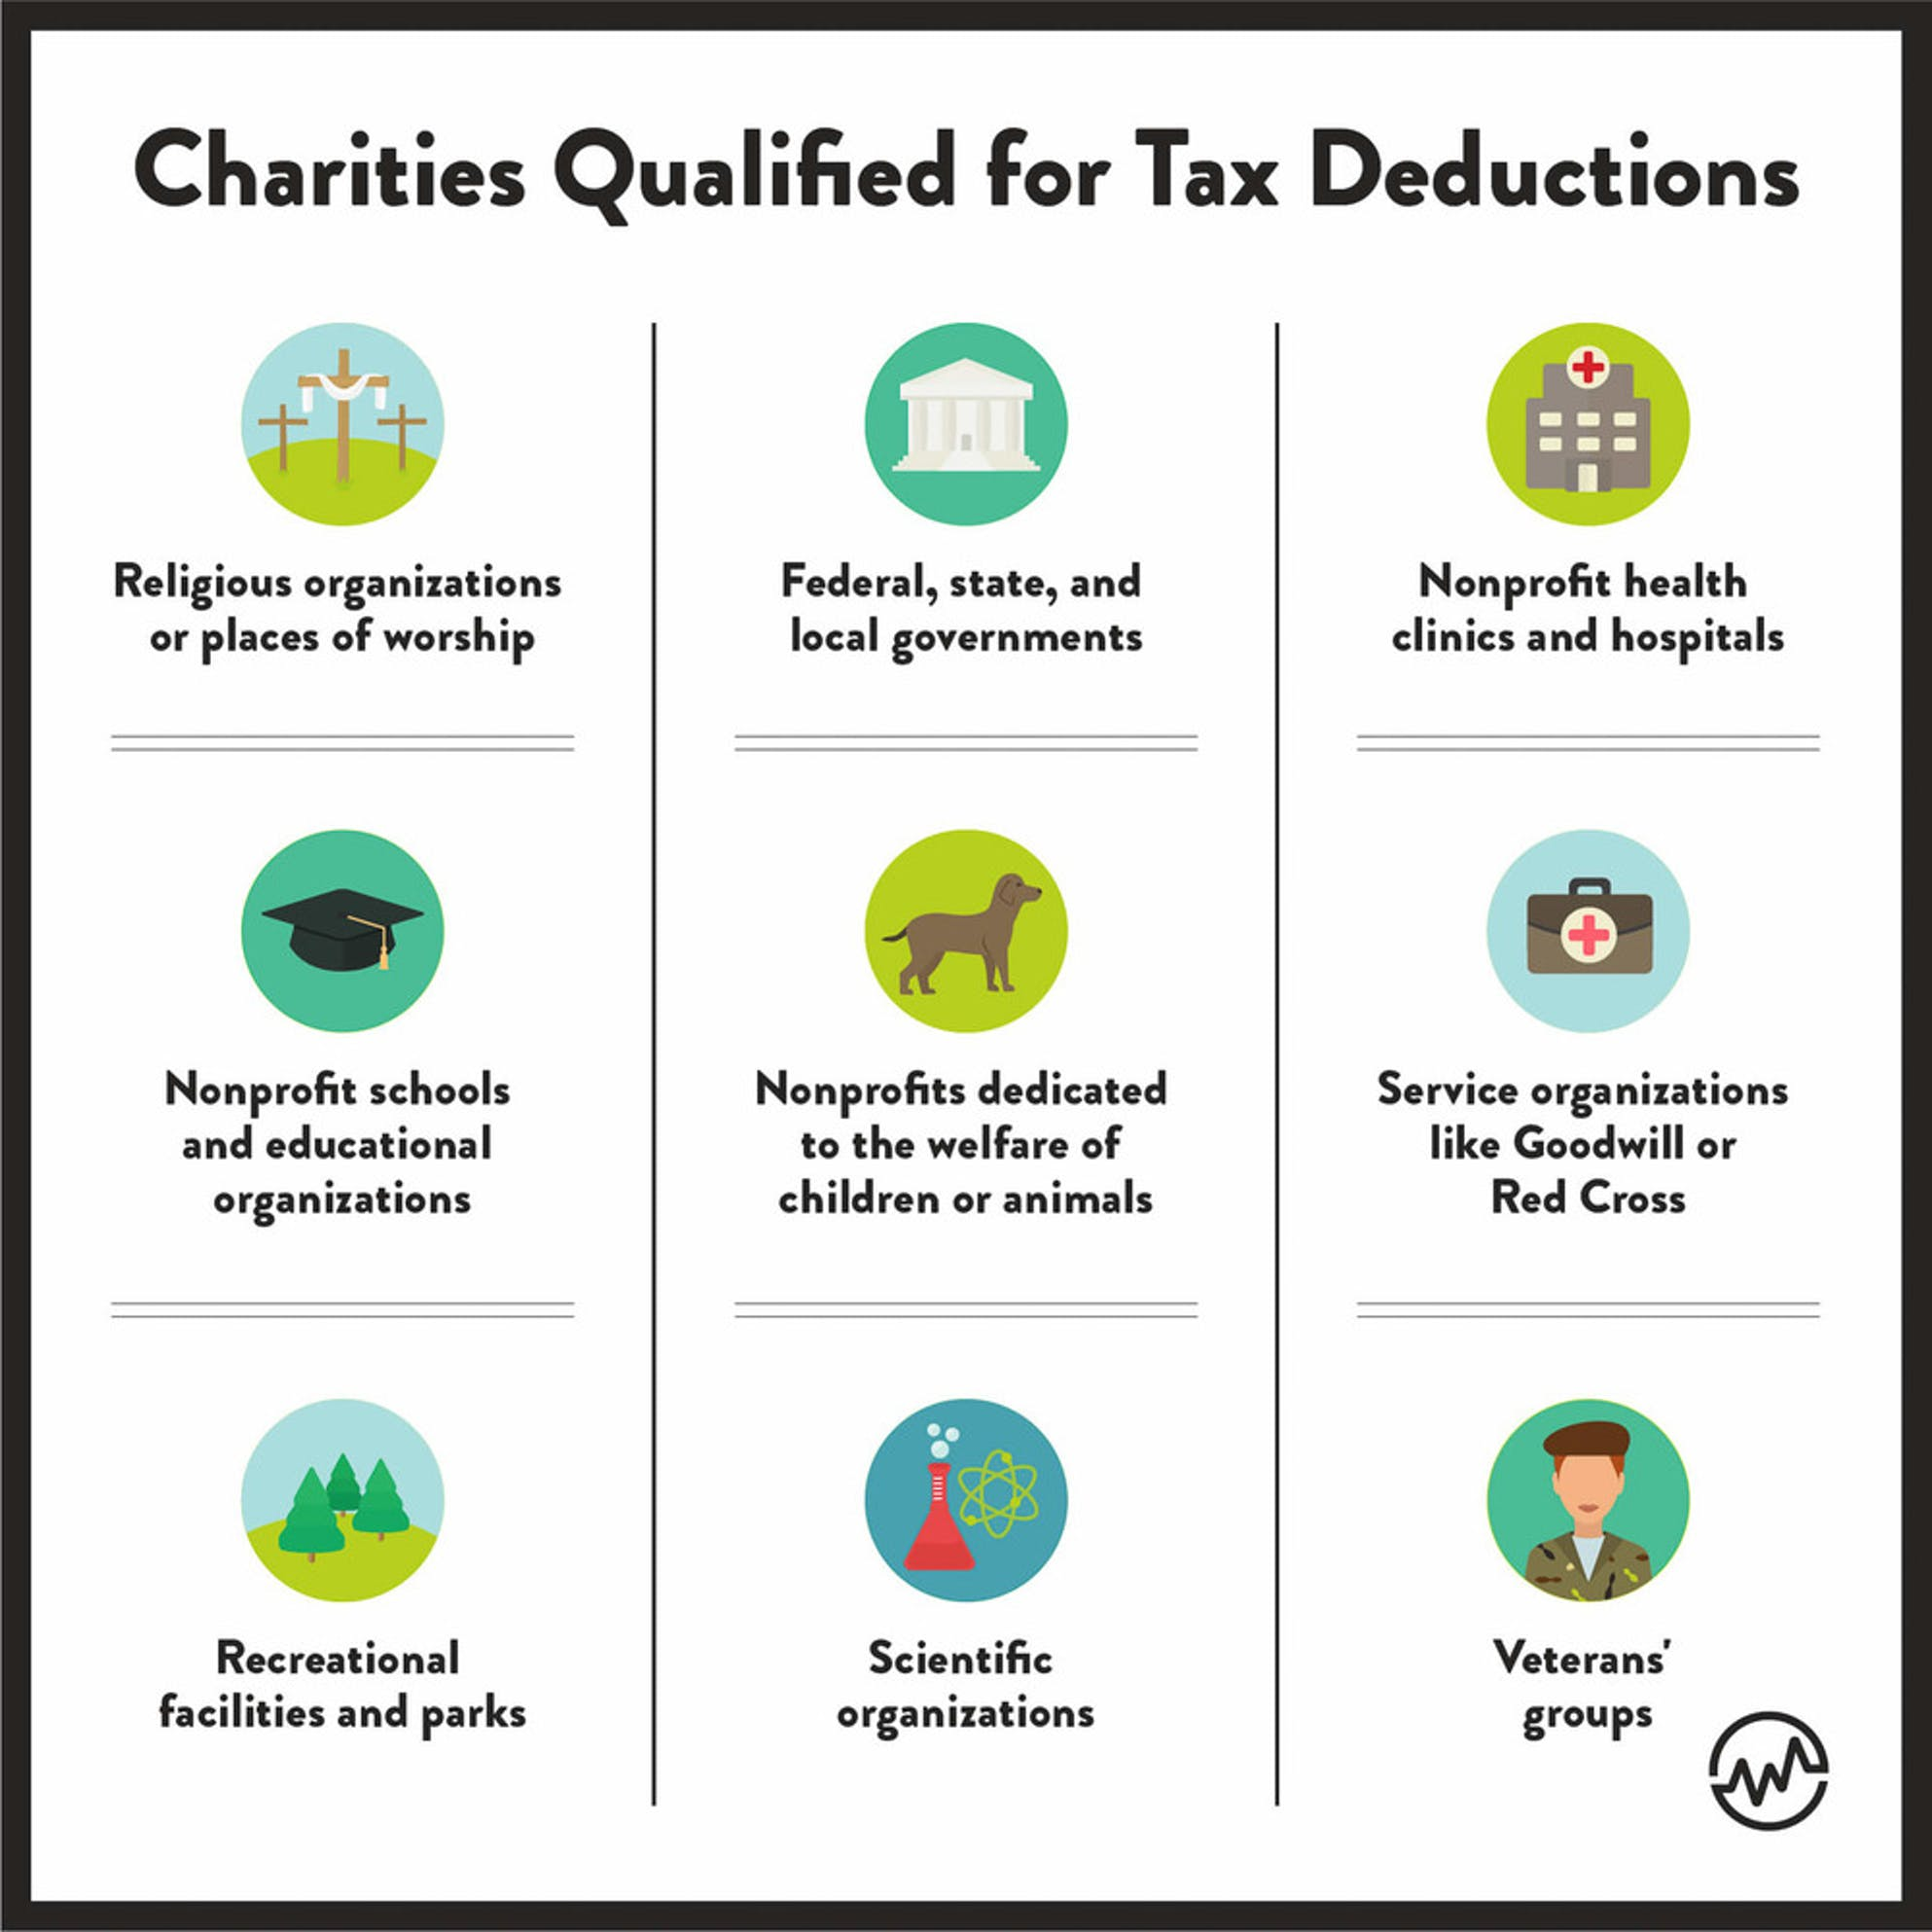 Charity qualified for tax deductible donations